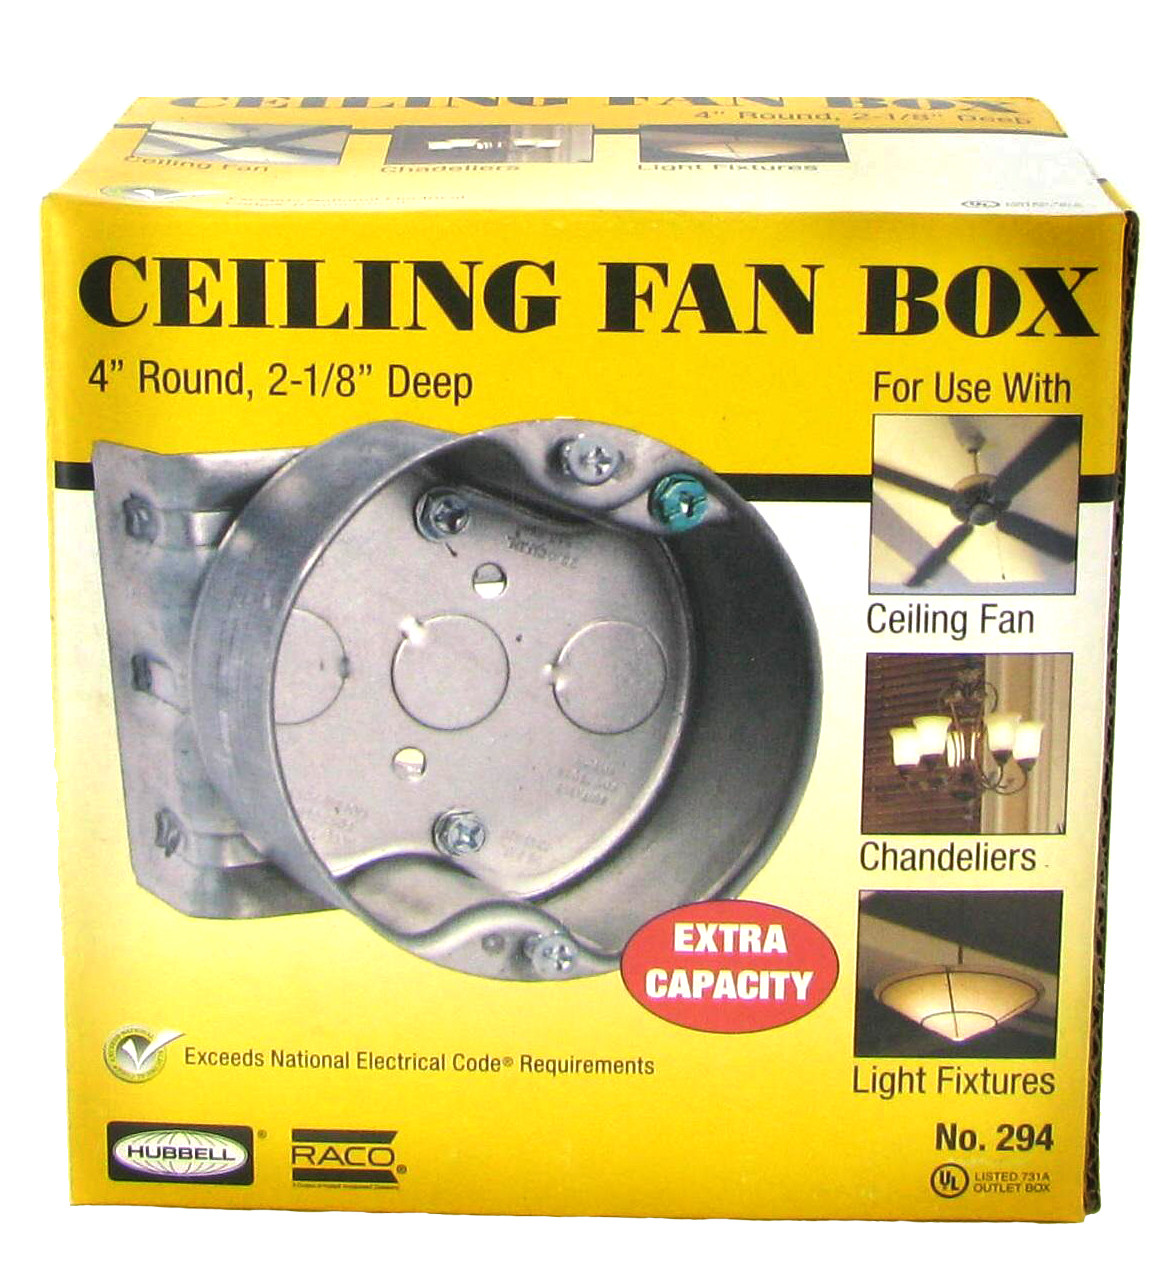 Raco 294 4 inch round ceiling fan support box 050169002940 2 ceiling fan support box hover to zoom 1 aloadofball Images